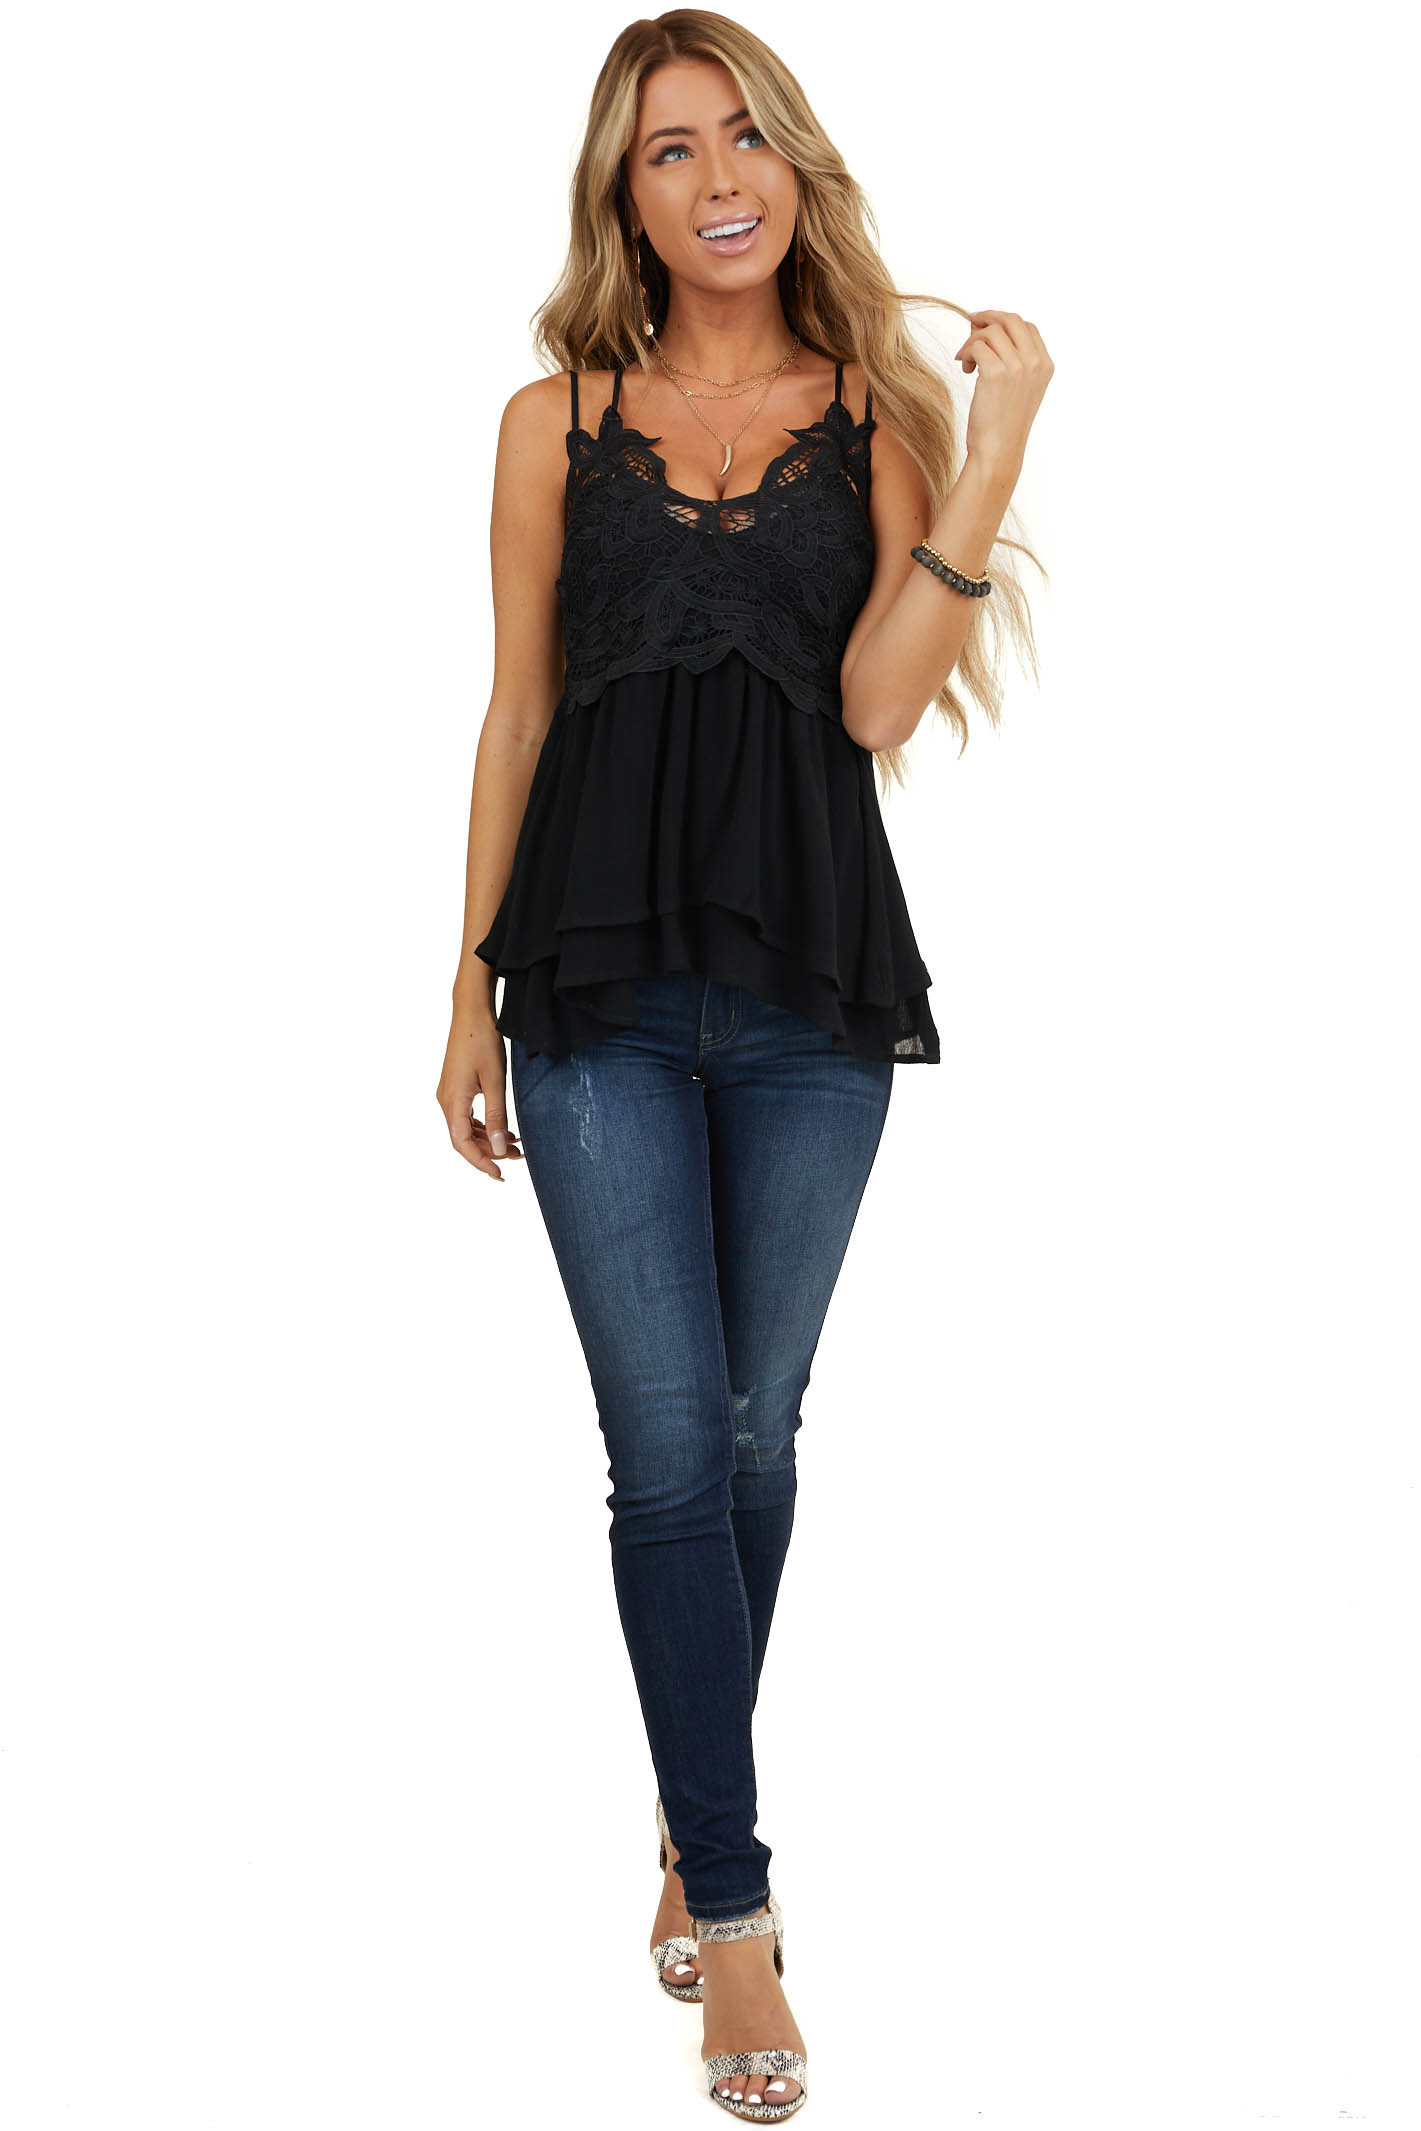 Black Tank with Smocked Back and Lace Details